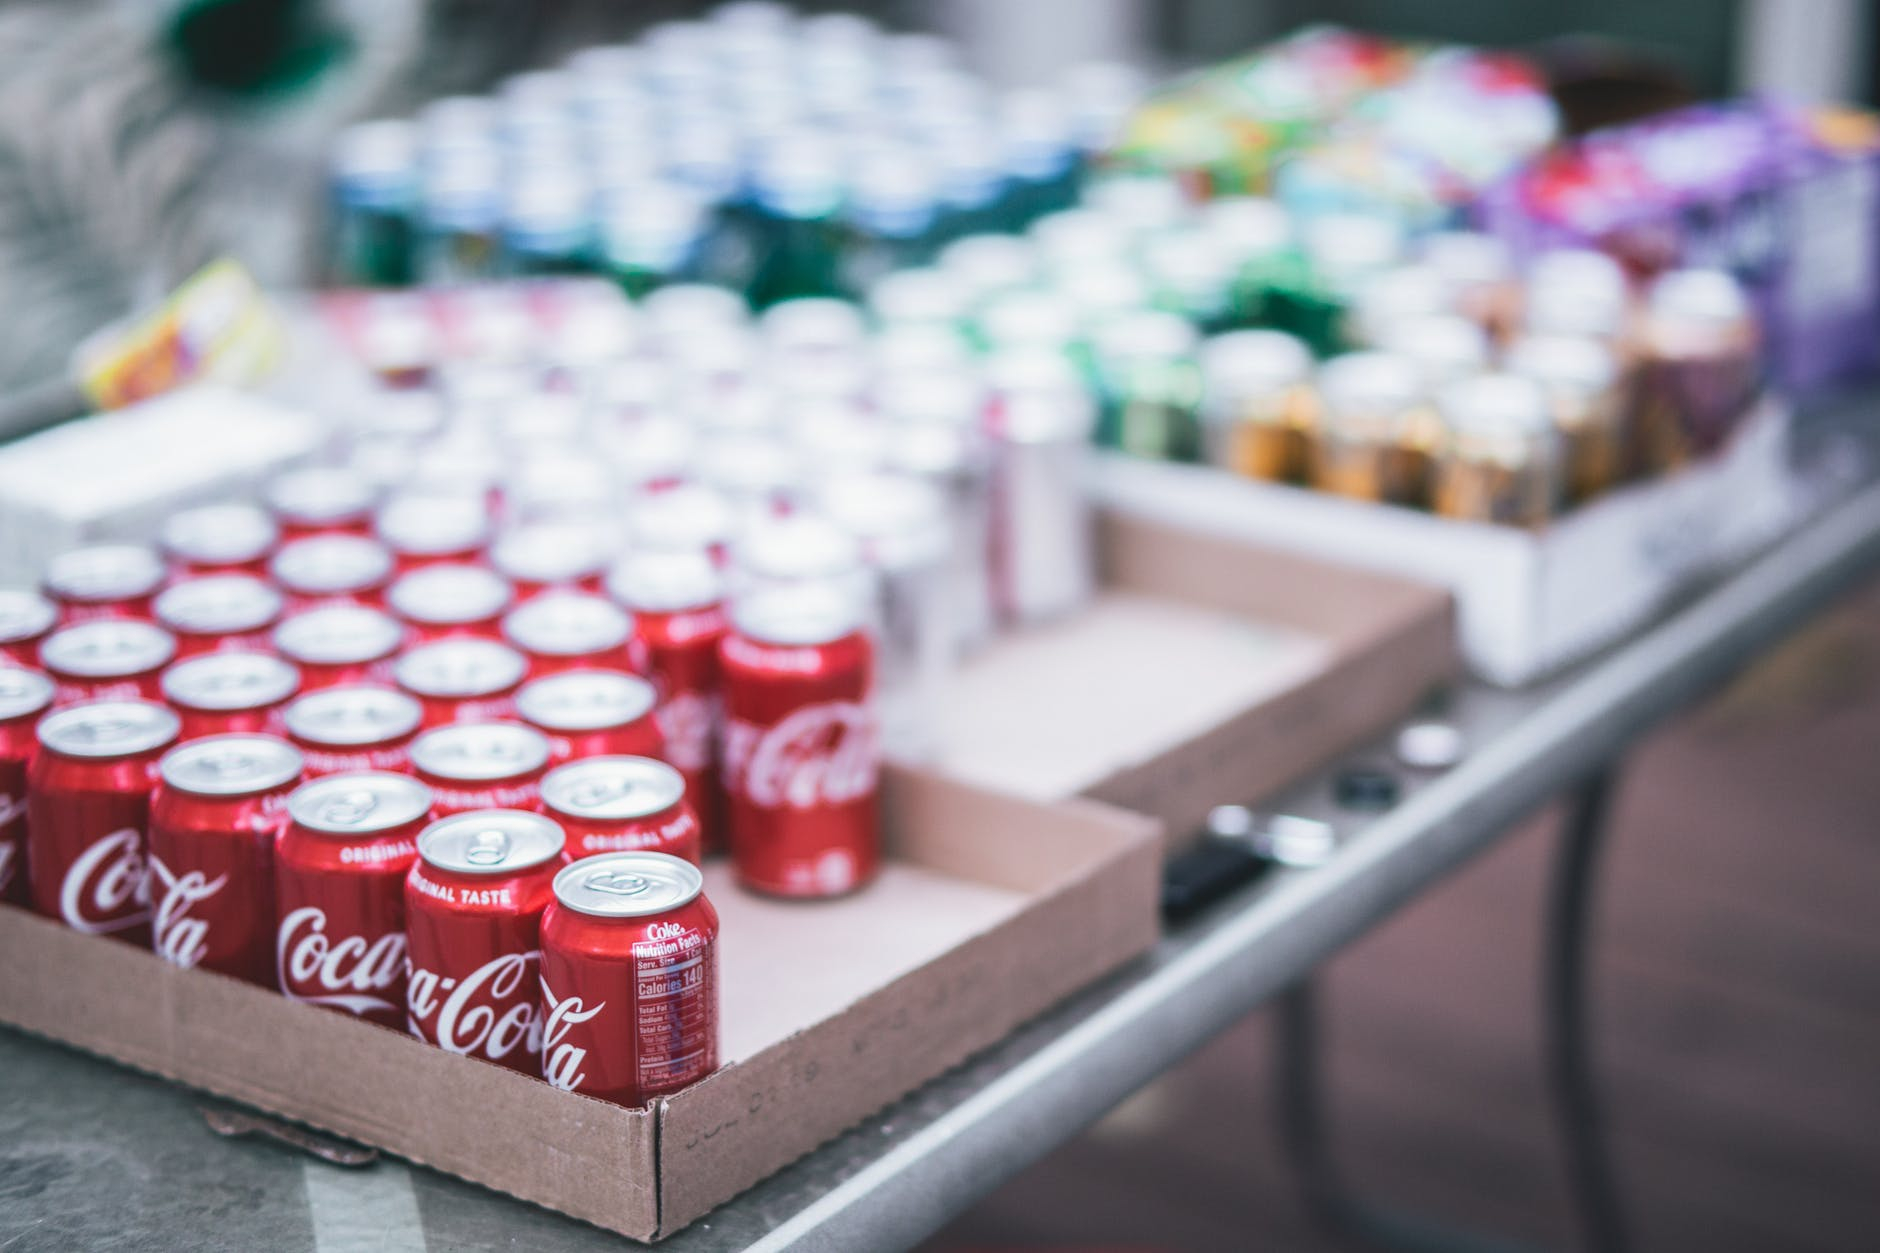 Coca Cola May Disappear From Some French Supermarkets